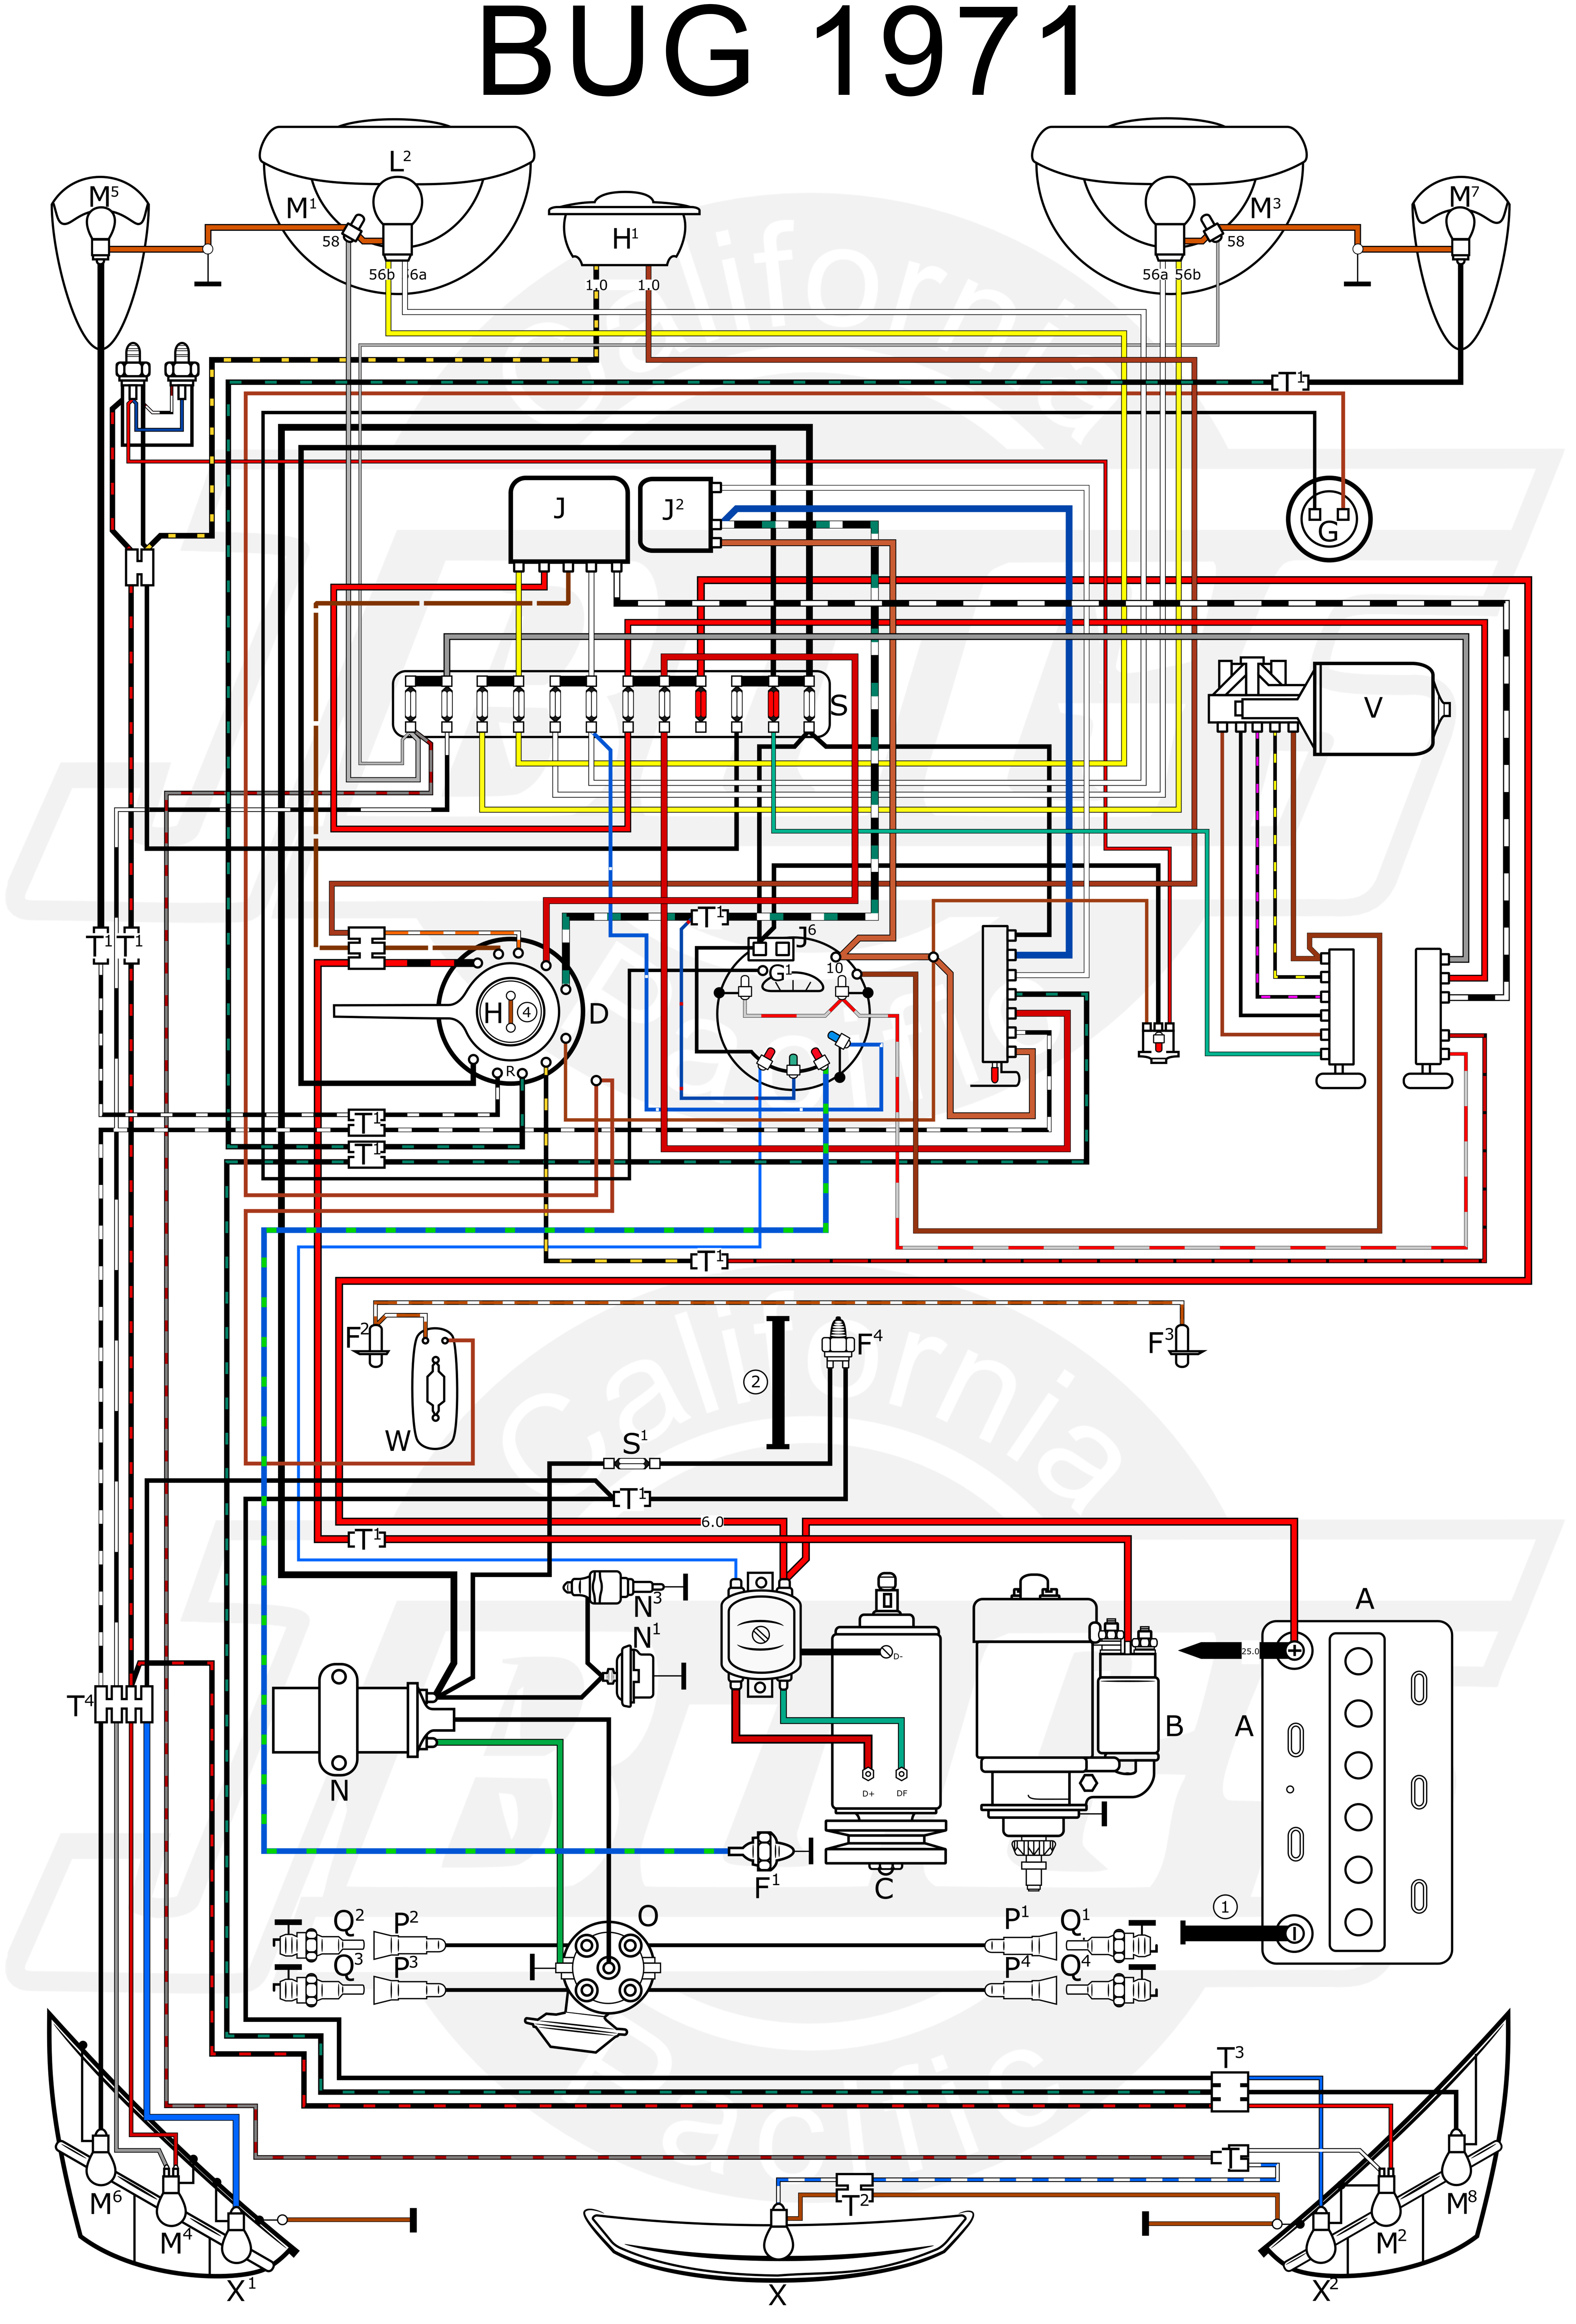 wire diagram for 1972 beetle zs 3692  wiring diagram moreover vw alternator wiring diagram as  wiring diagram moreover vw alternator